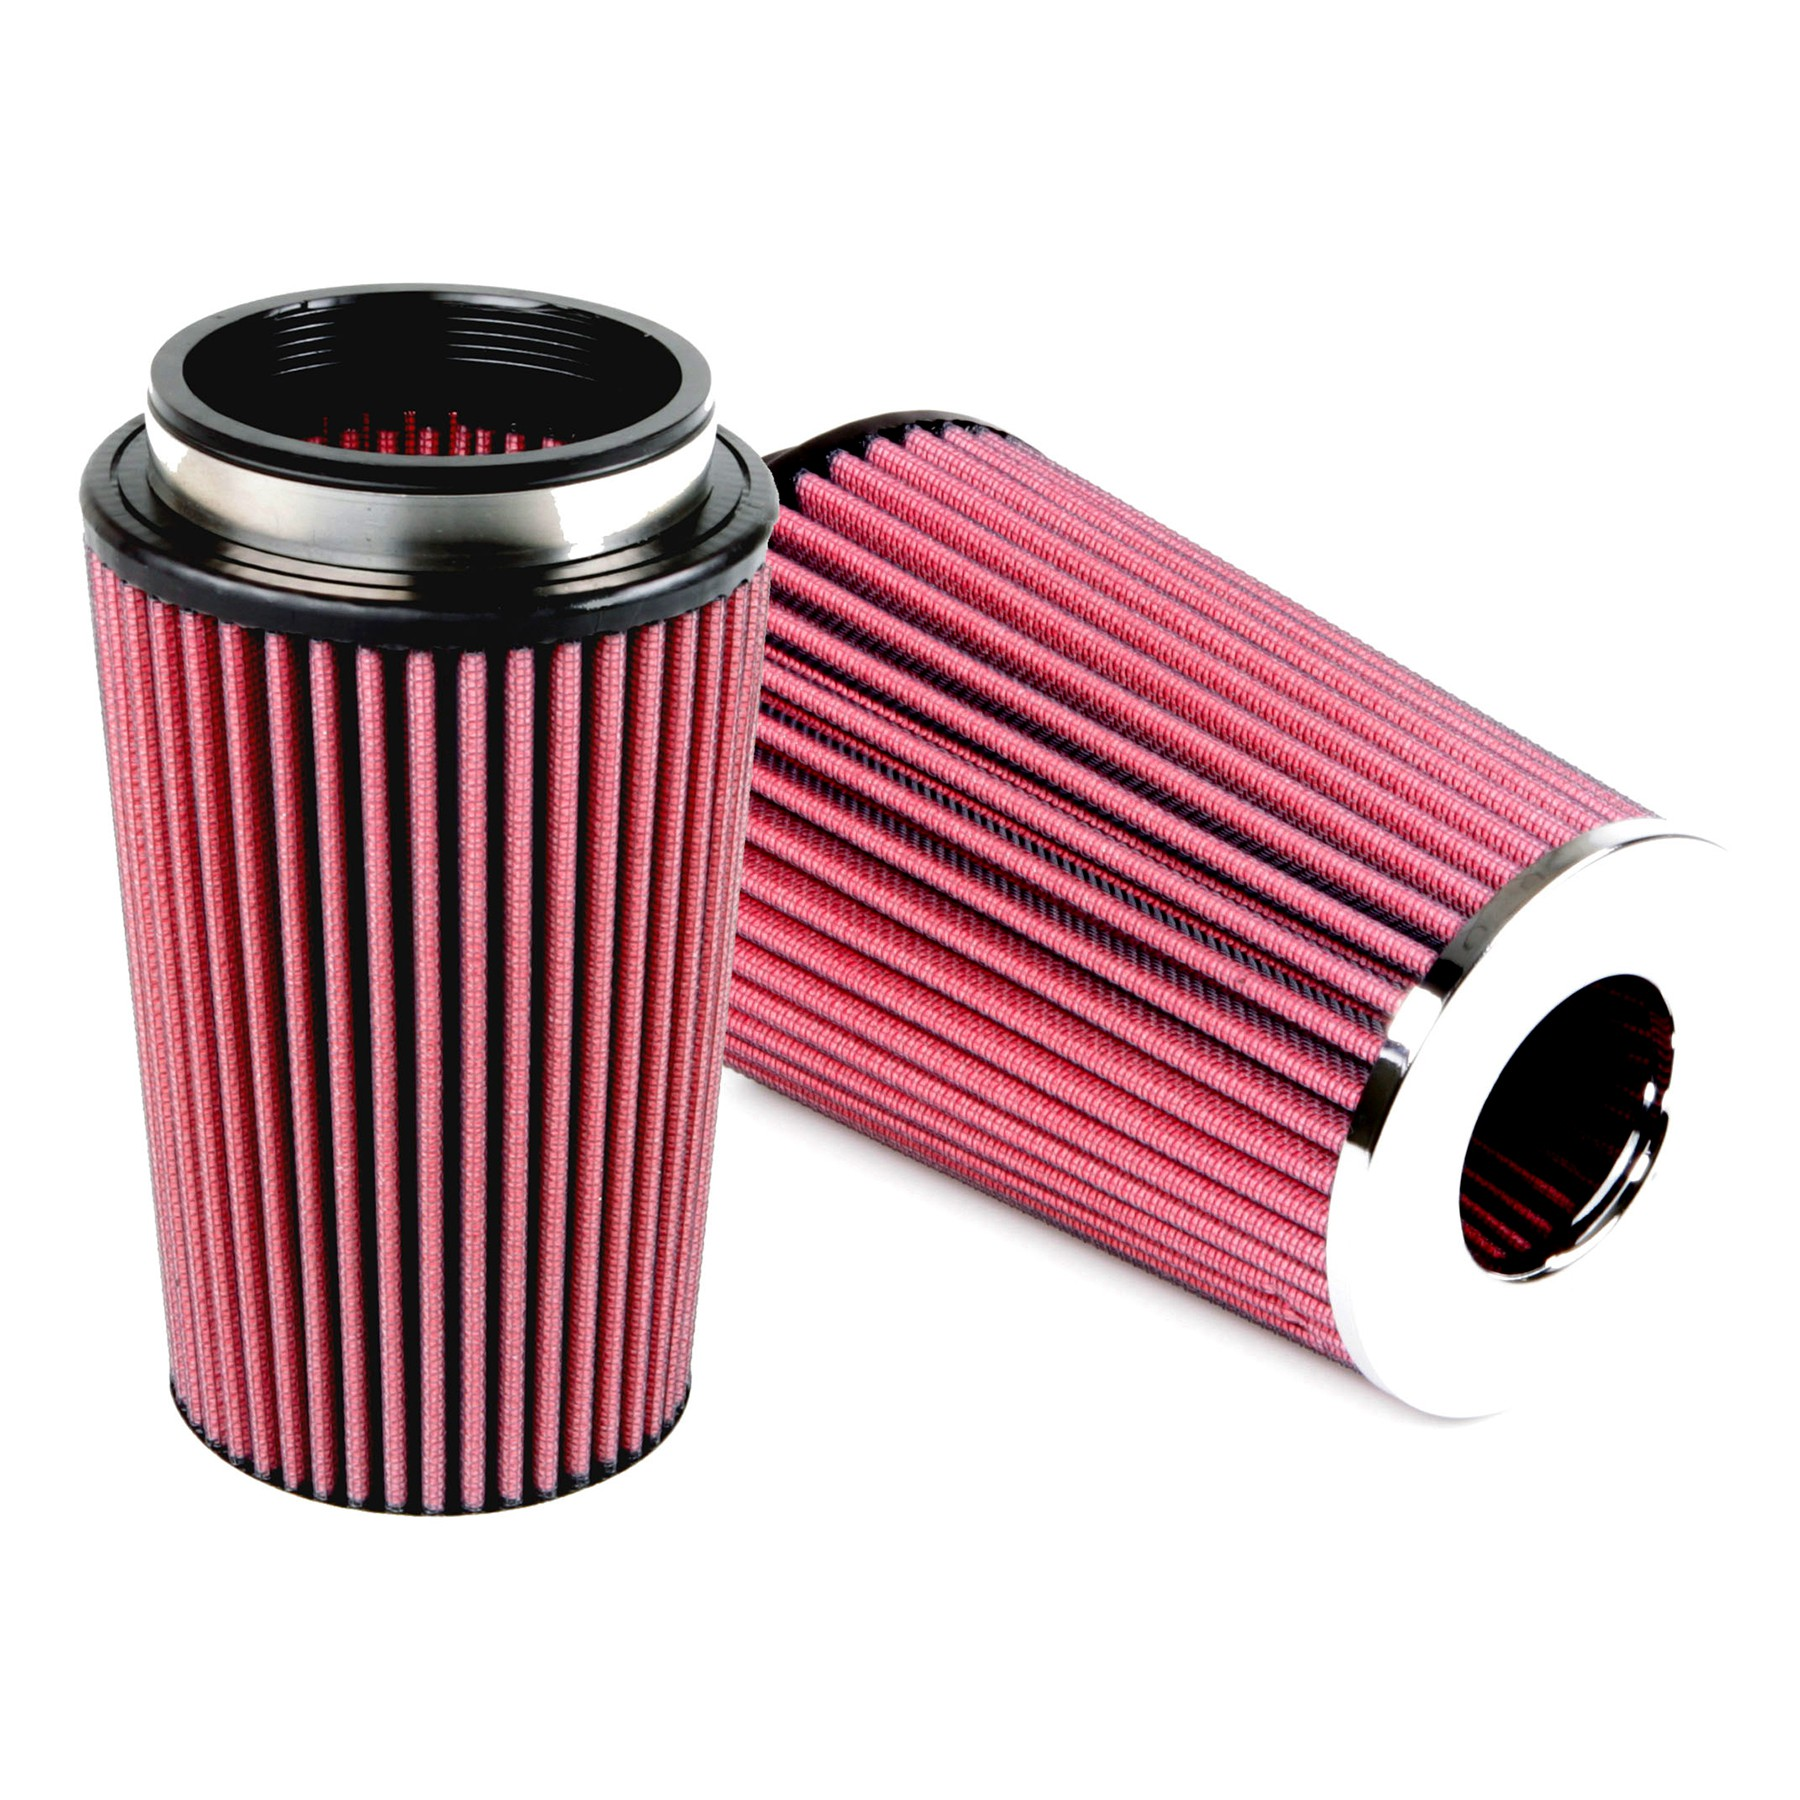 S/&B Filters Intake Replacement Filter Cotton Cleanable ; KF-1038